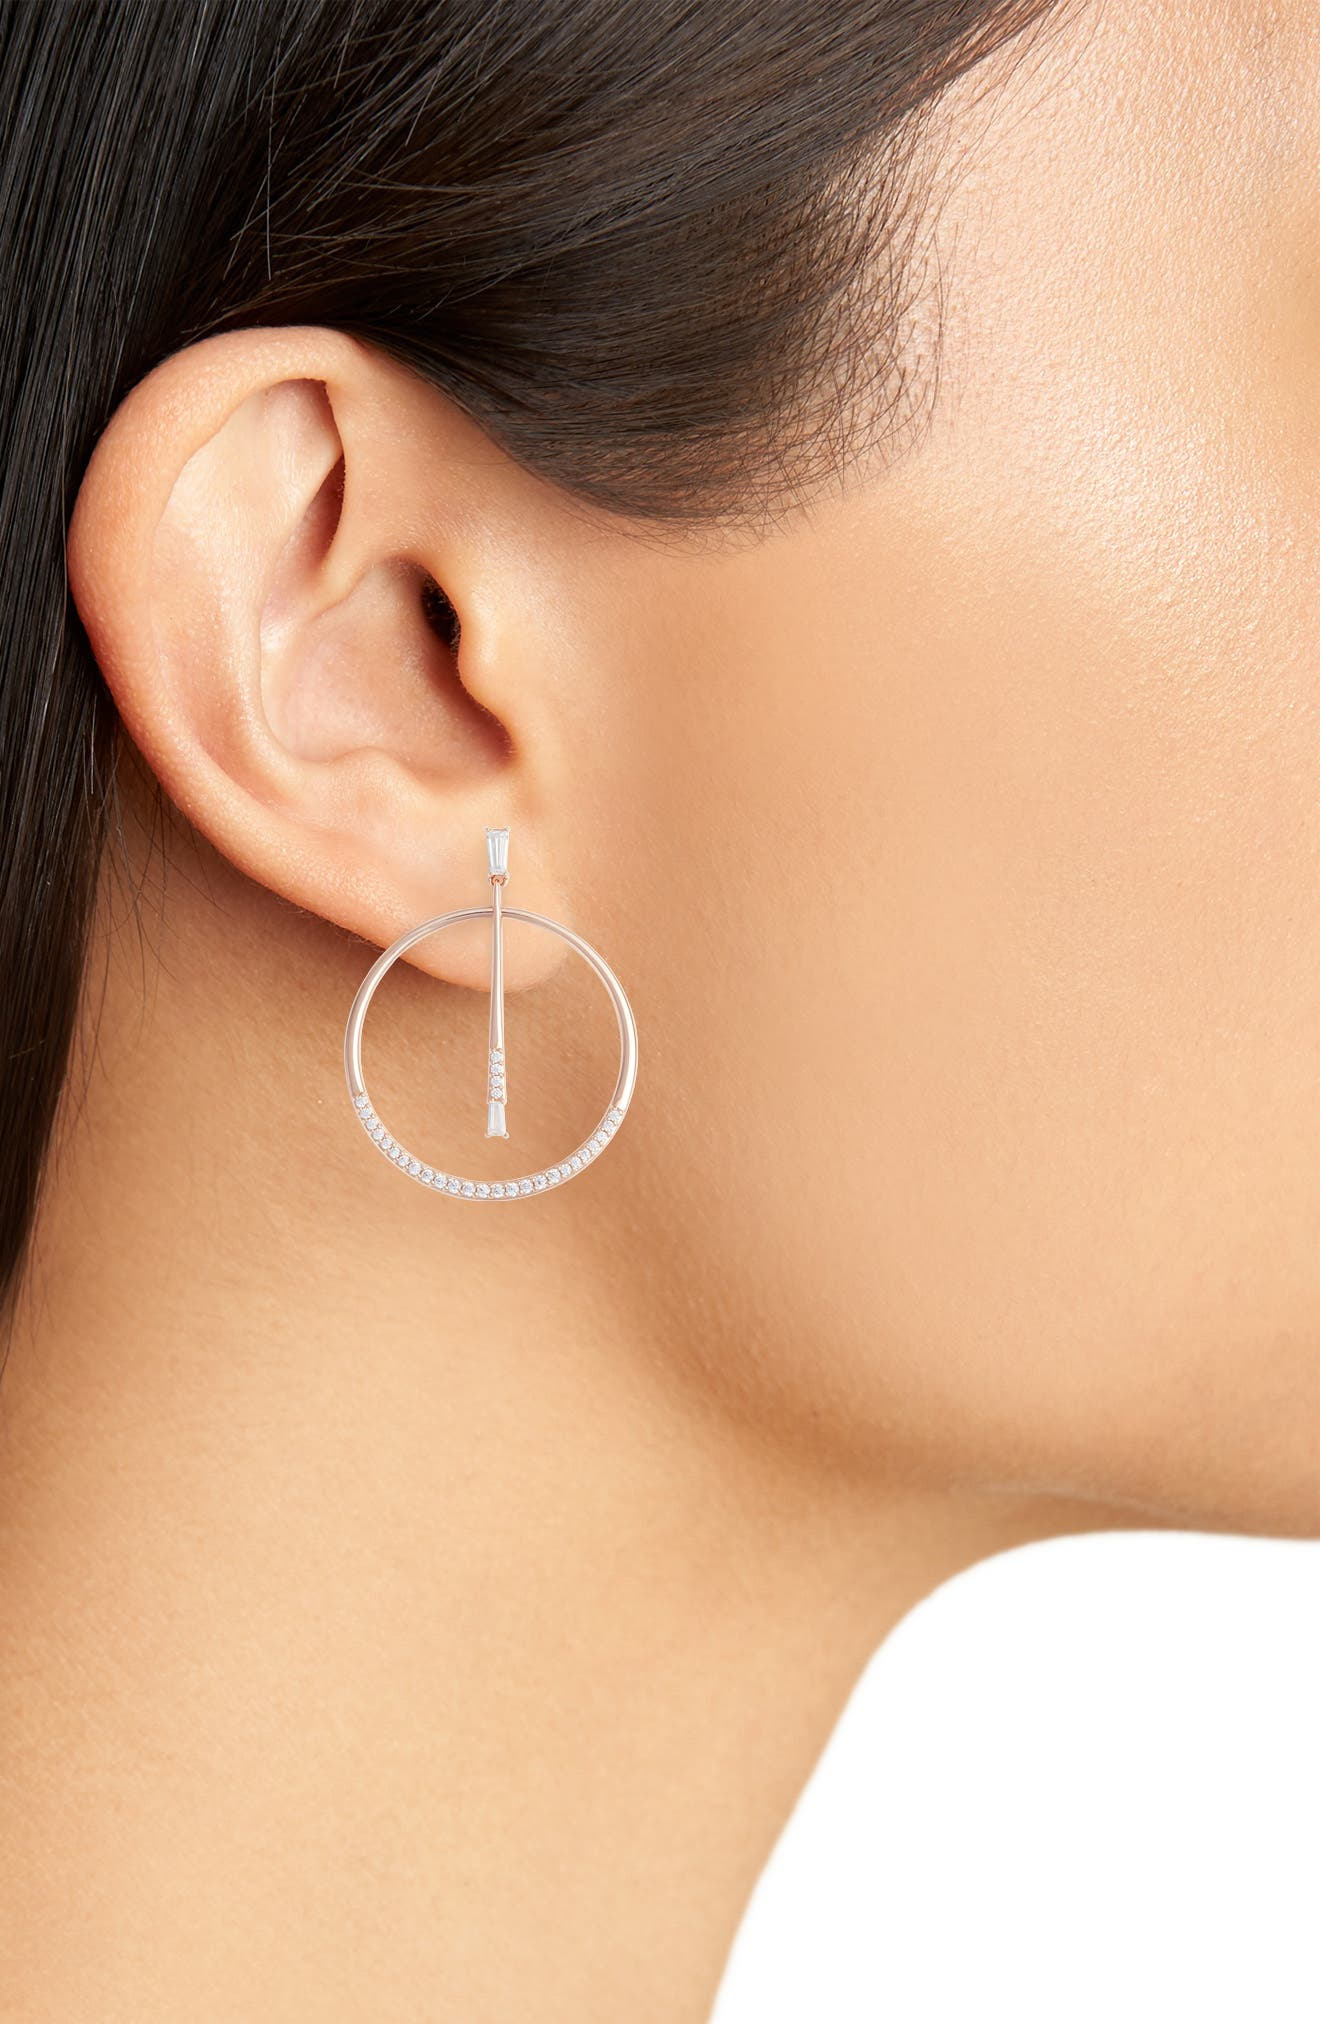 Cubic Zirconia Frontal Hoop Earrings,                             Alternate thumbnail 2, color,                             Rose Gold/ Clear